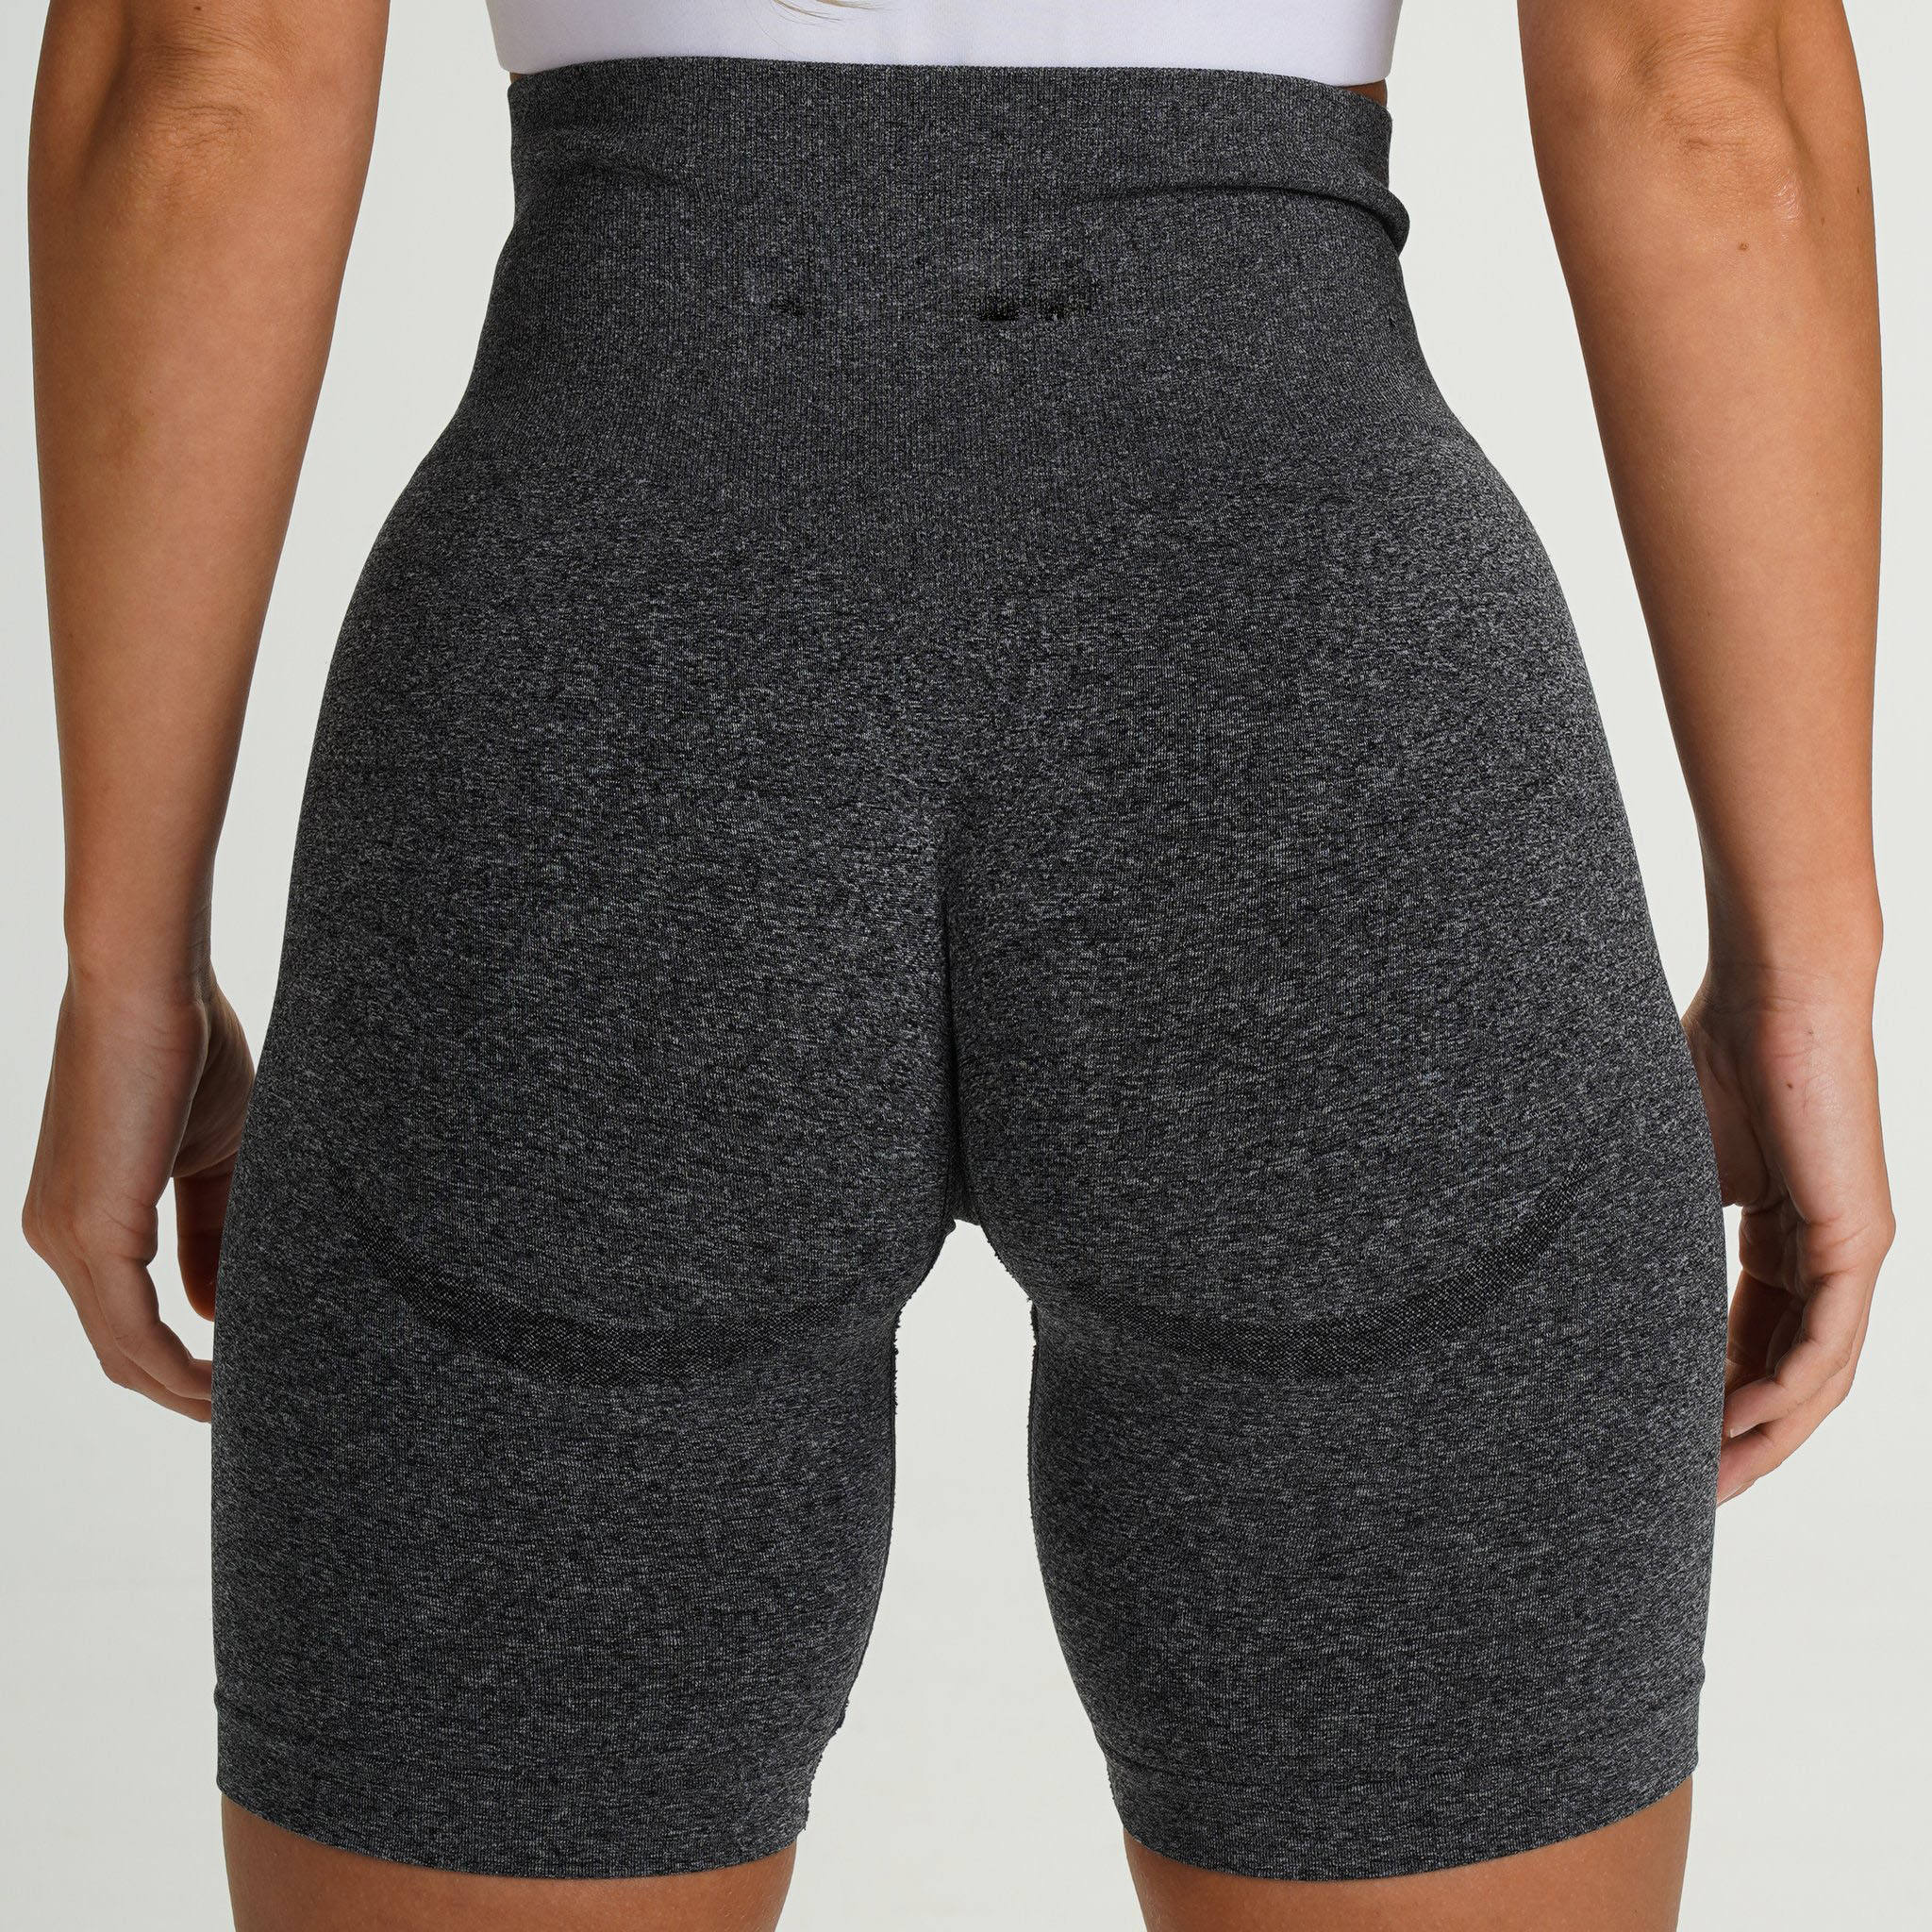 Activewear Black Outfit Contour Butt Lift Speckled Compression Biker Workout fitness Gym wear seamless high waisted shorts women